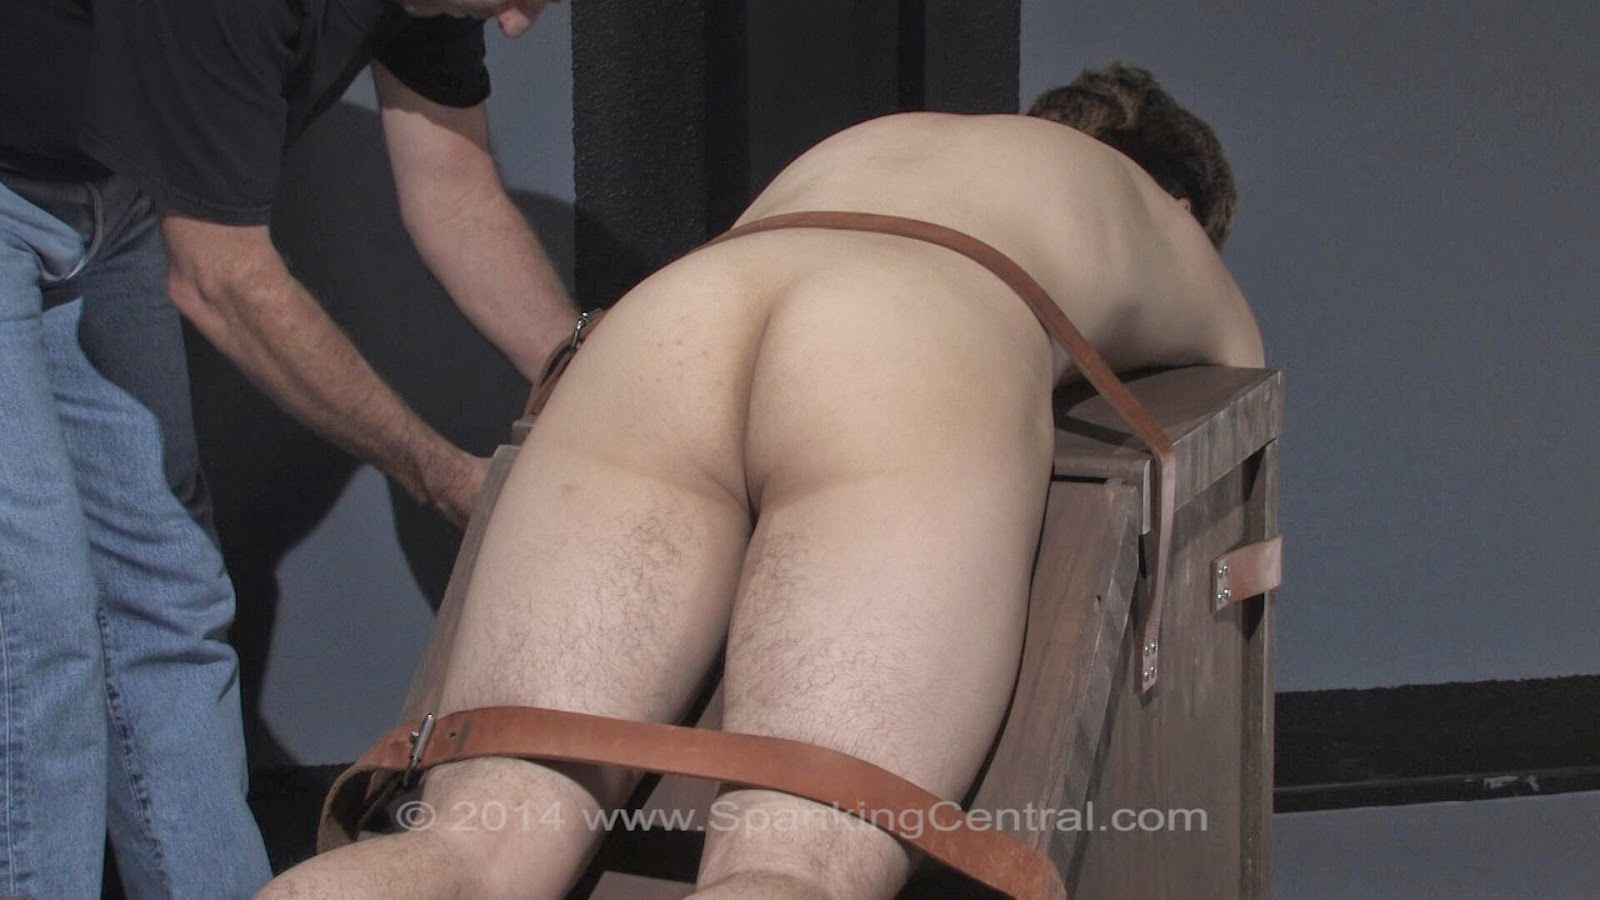 Spanking central free full movies gay hot